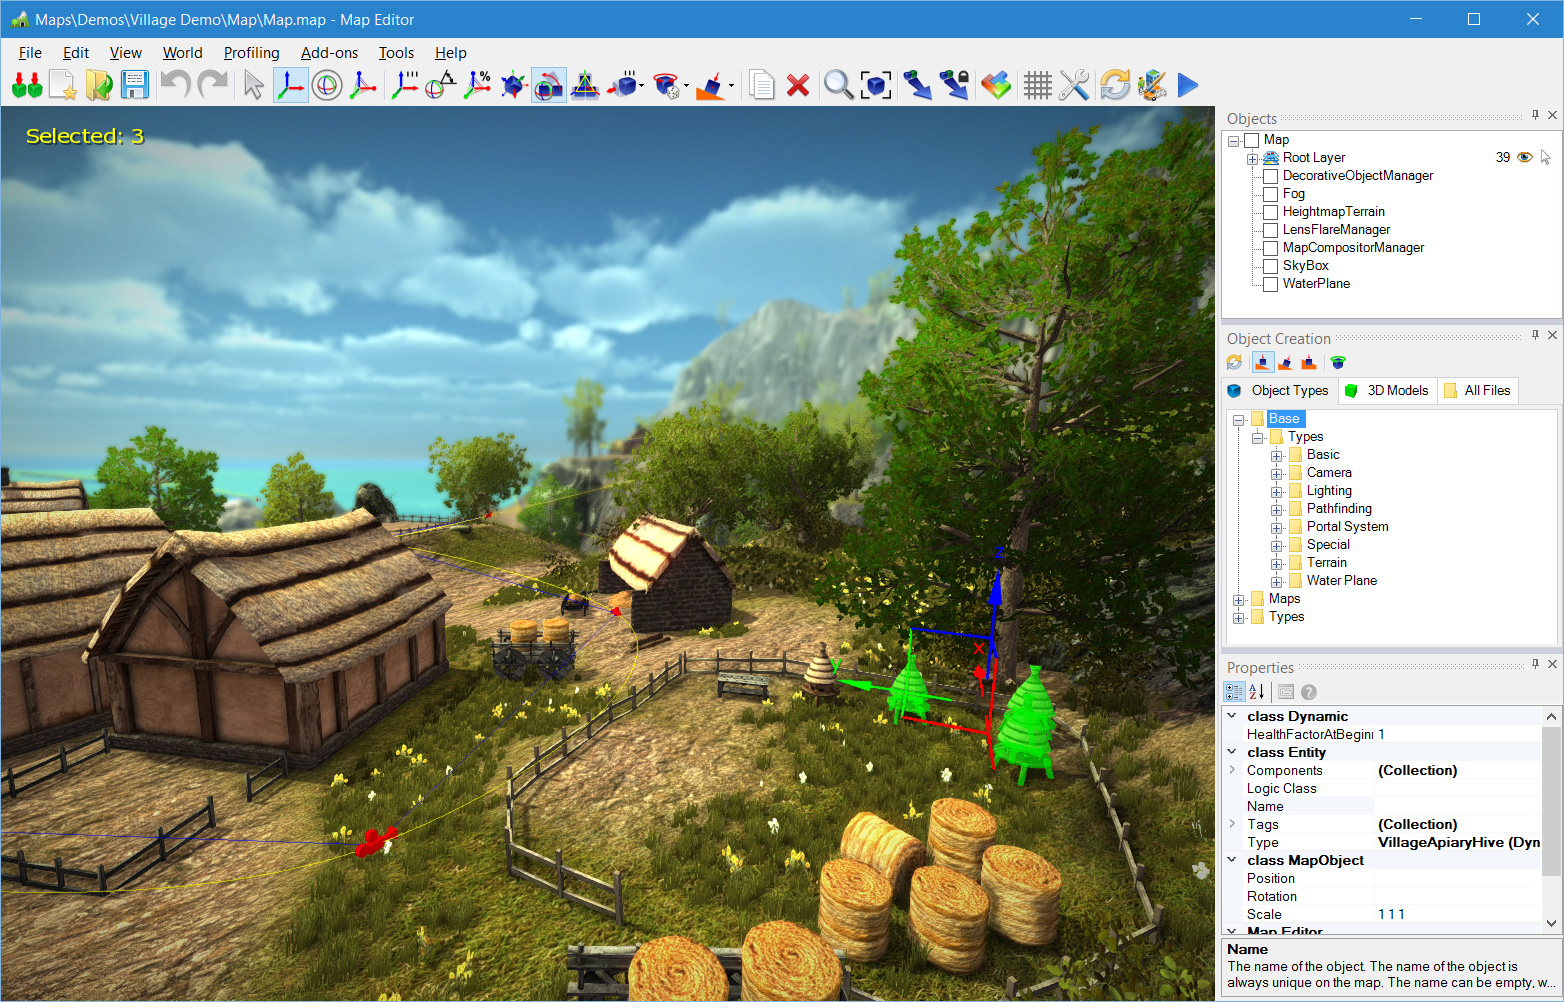 Neoaxis 3d engine 35 released neoaxis 3d engine the latest version features updated editor design a new tool to quickly import 3d models updated example maps as well as multiple minor changes and bug gumiabroncs Gallery